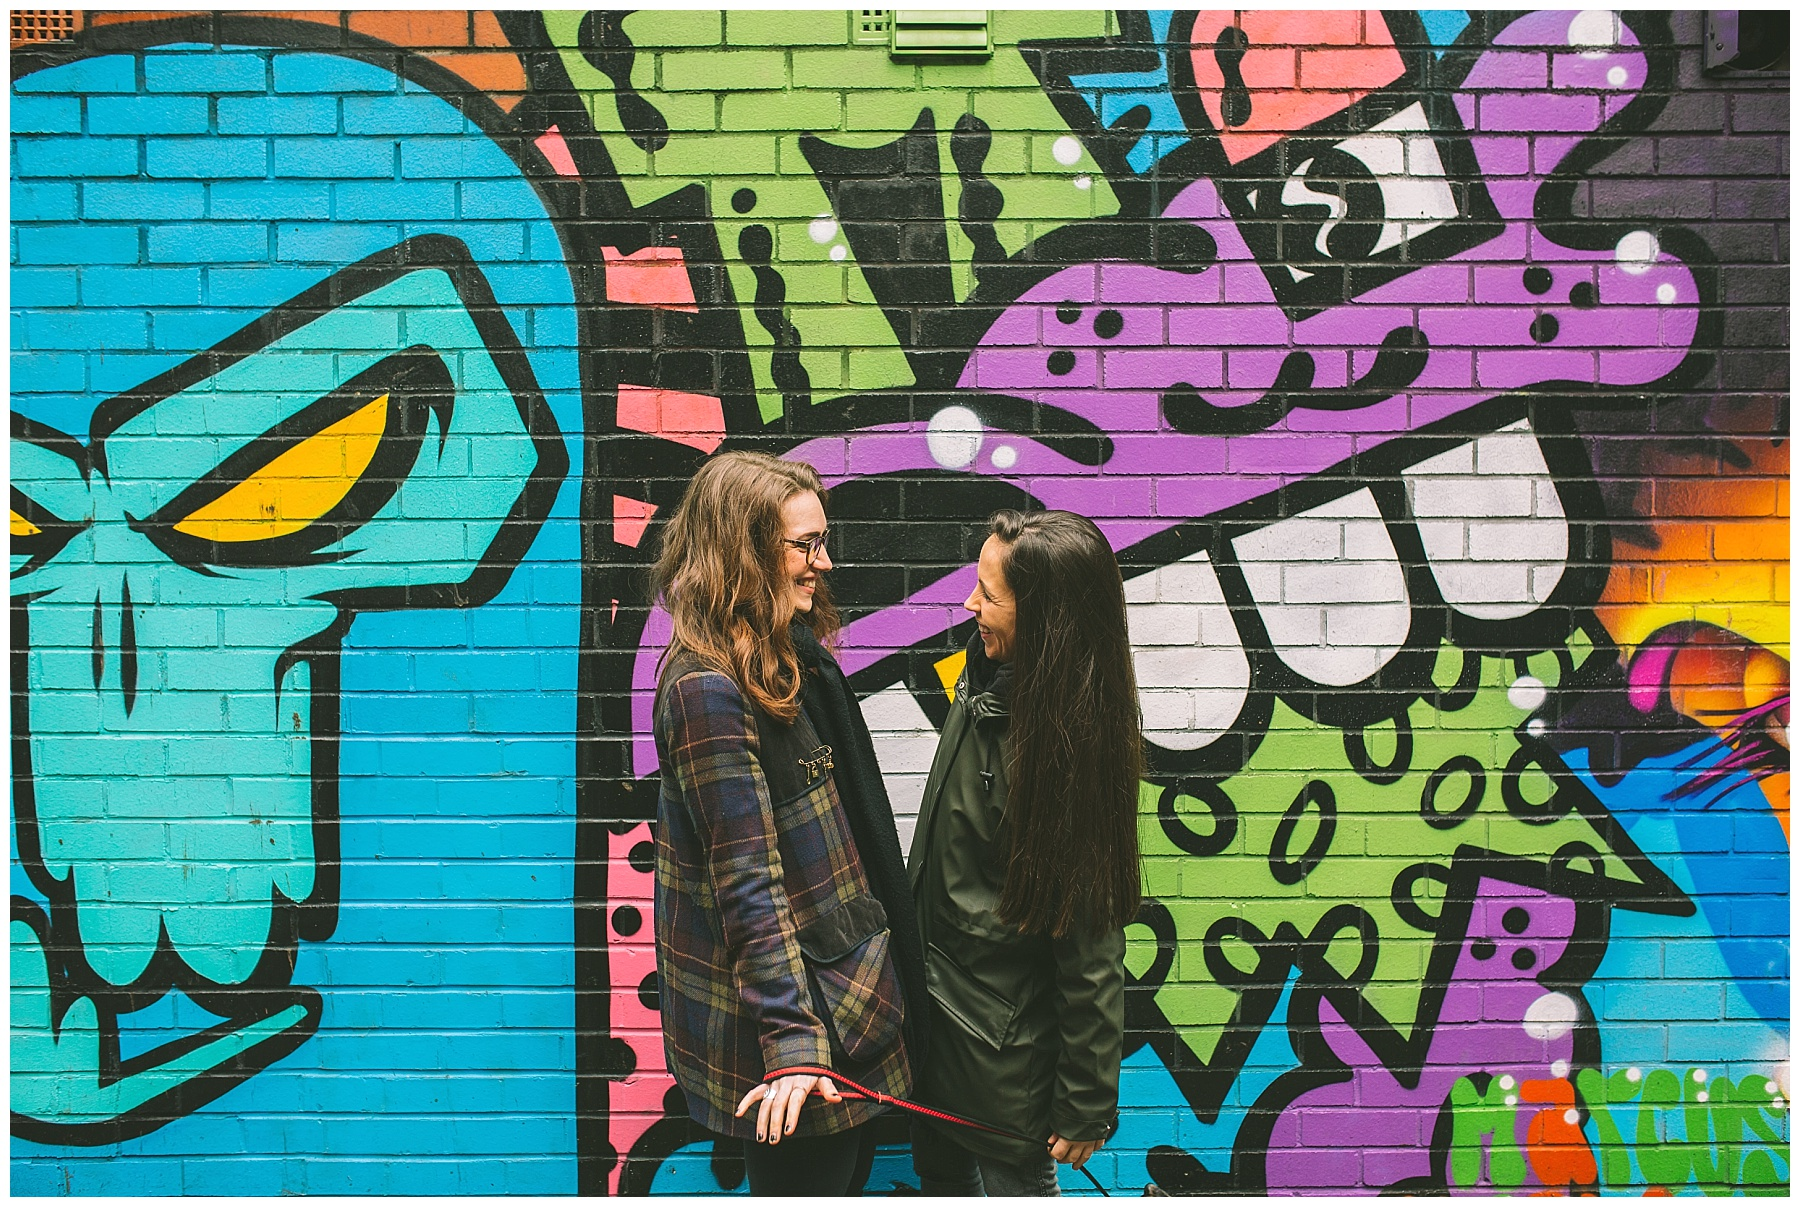 Same sex couple stand in front of a graffiti mural